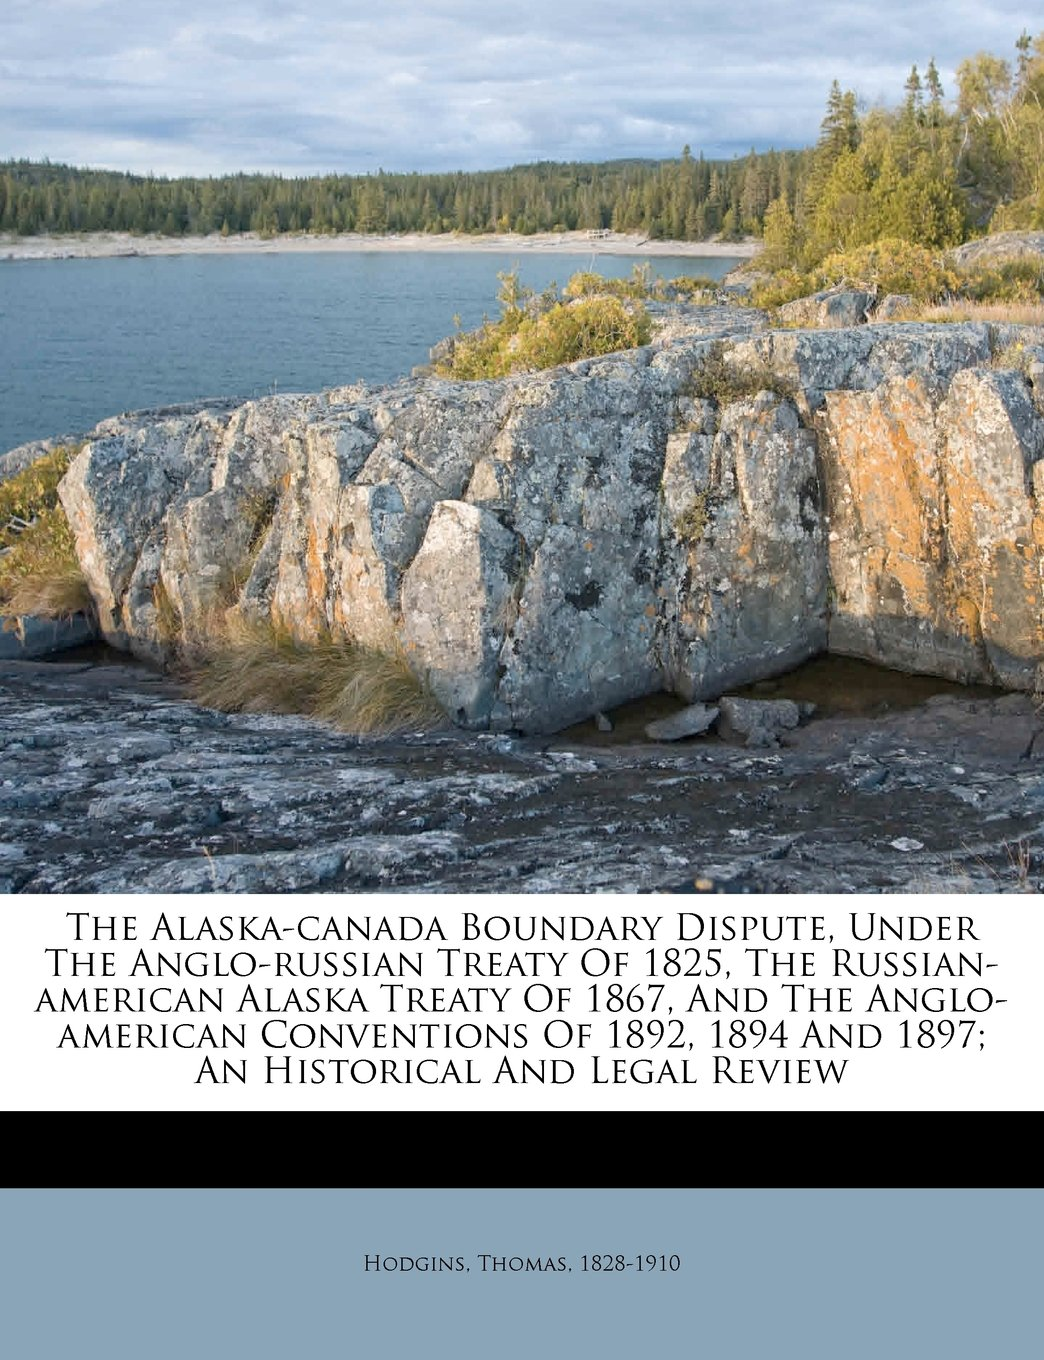 Download The Alaska-canada Boundary Dispute, Under The Anglo-russian Treaty Of 1825, The Russian-american Alaska Treaty Of 1867, And The Anglo-american ... 1894 And 1897; An Historical And Legal Review PDF